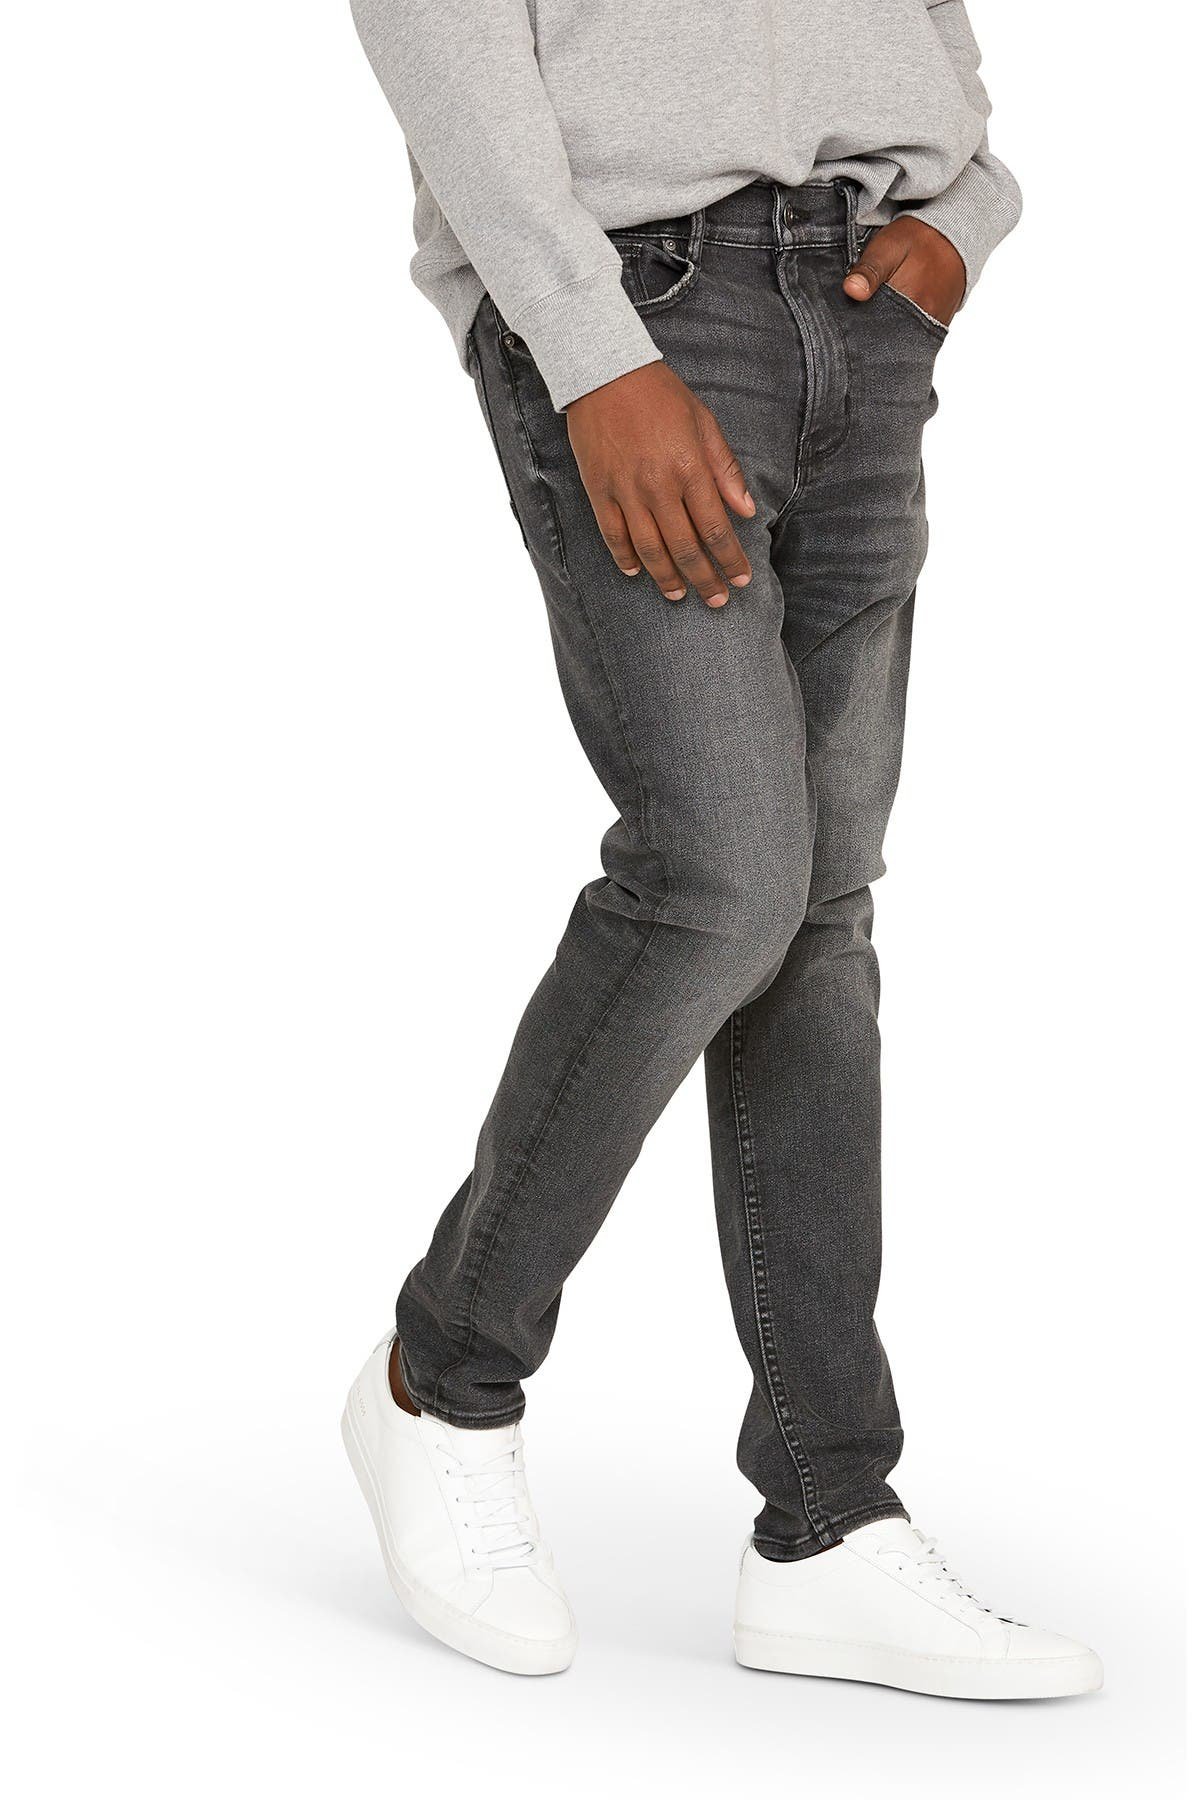 Image of HUDSON Jeans Ace Zip Fly Skinny Ankle Jeans